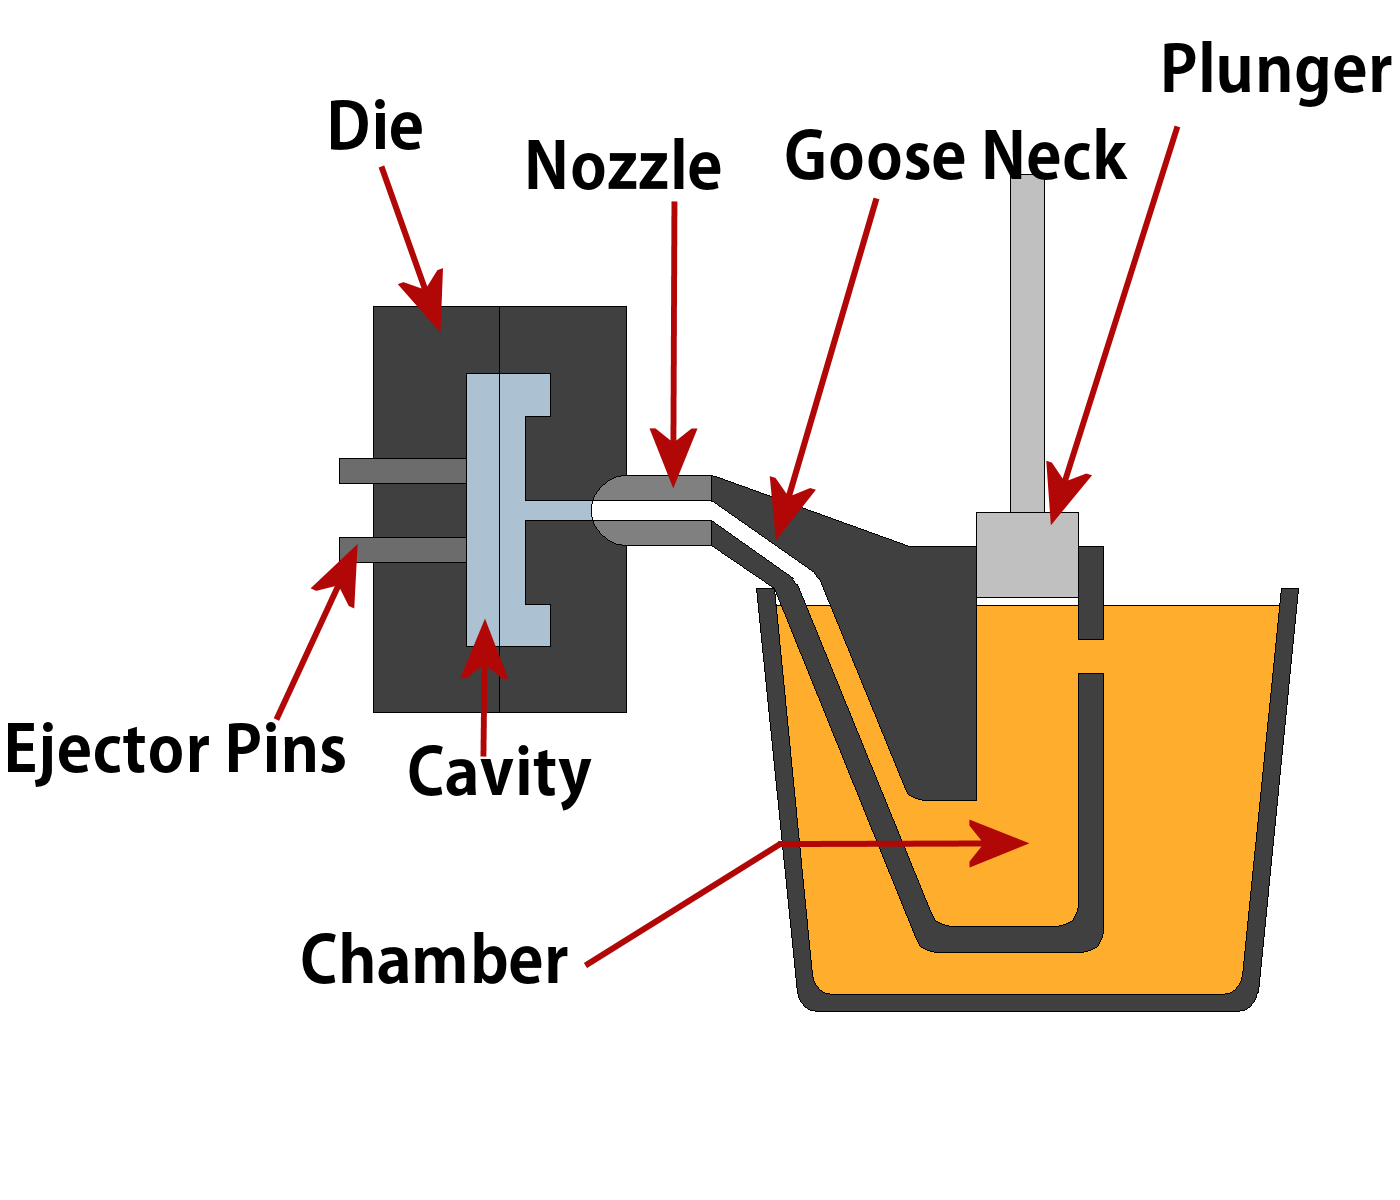 die_casting_diagram_large.png